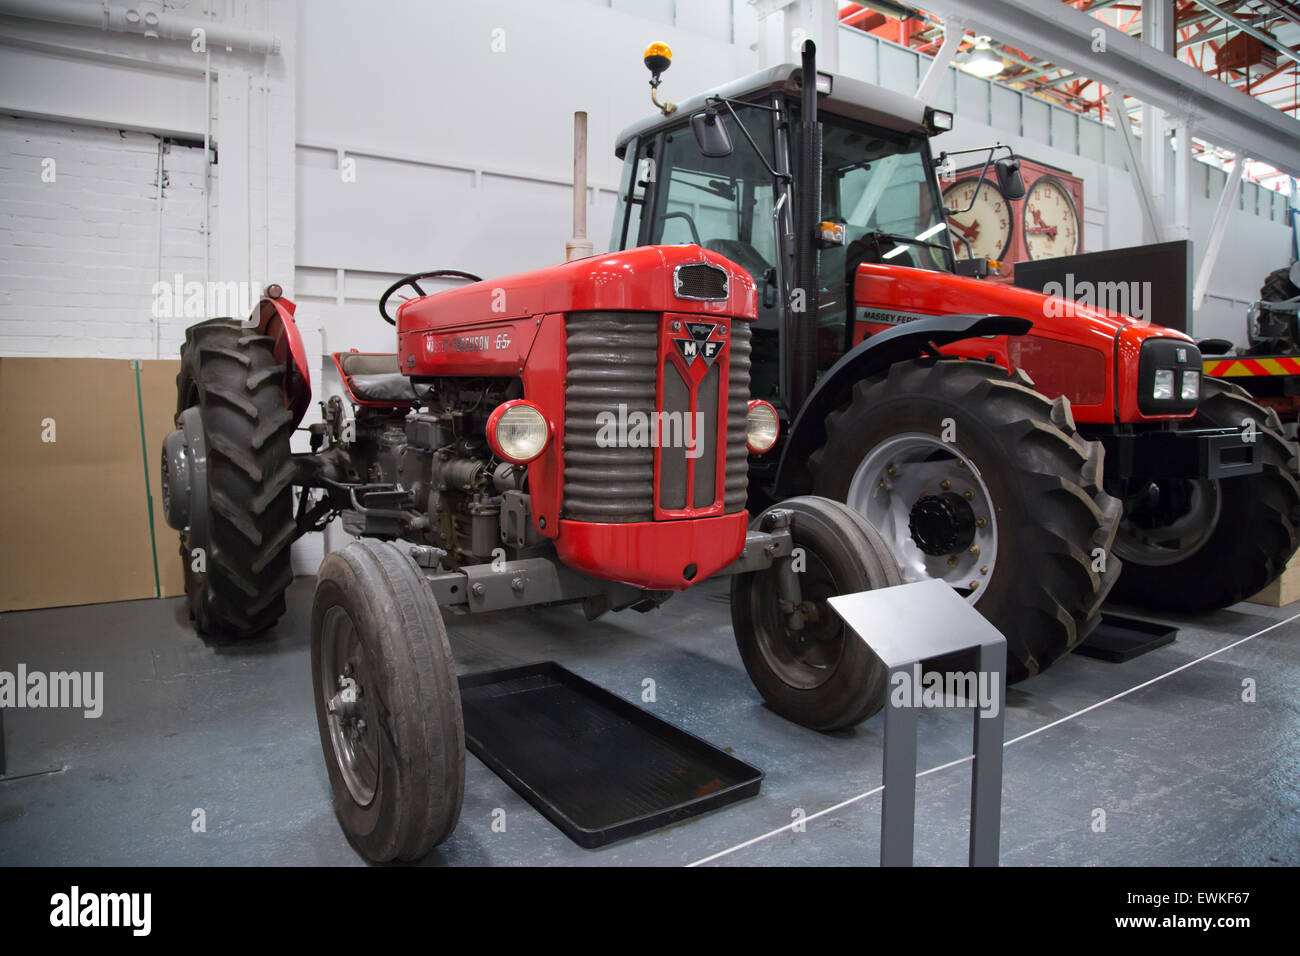 2002 massey ferguson traktor auf dem display an coventry transport museum neben einem oldtimer. Black Bedroom Furniture Sets. Home Design Ideas